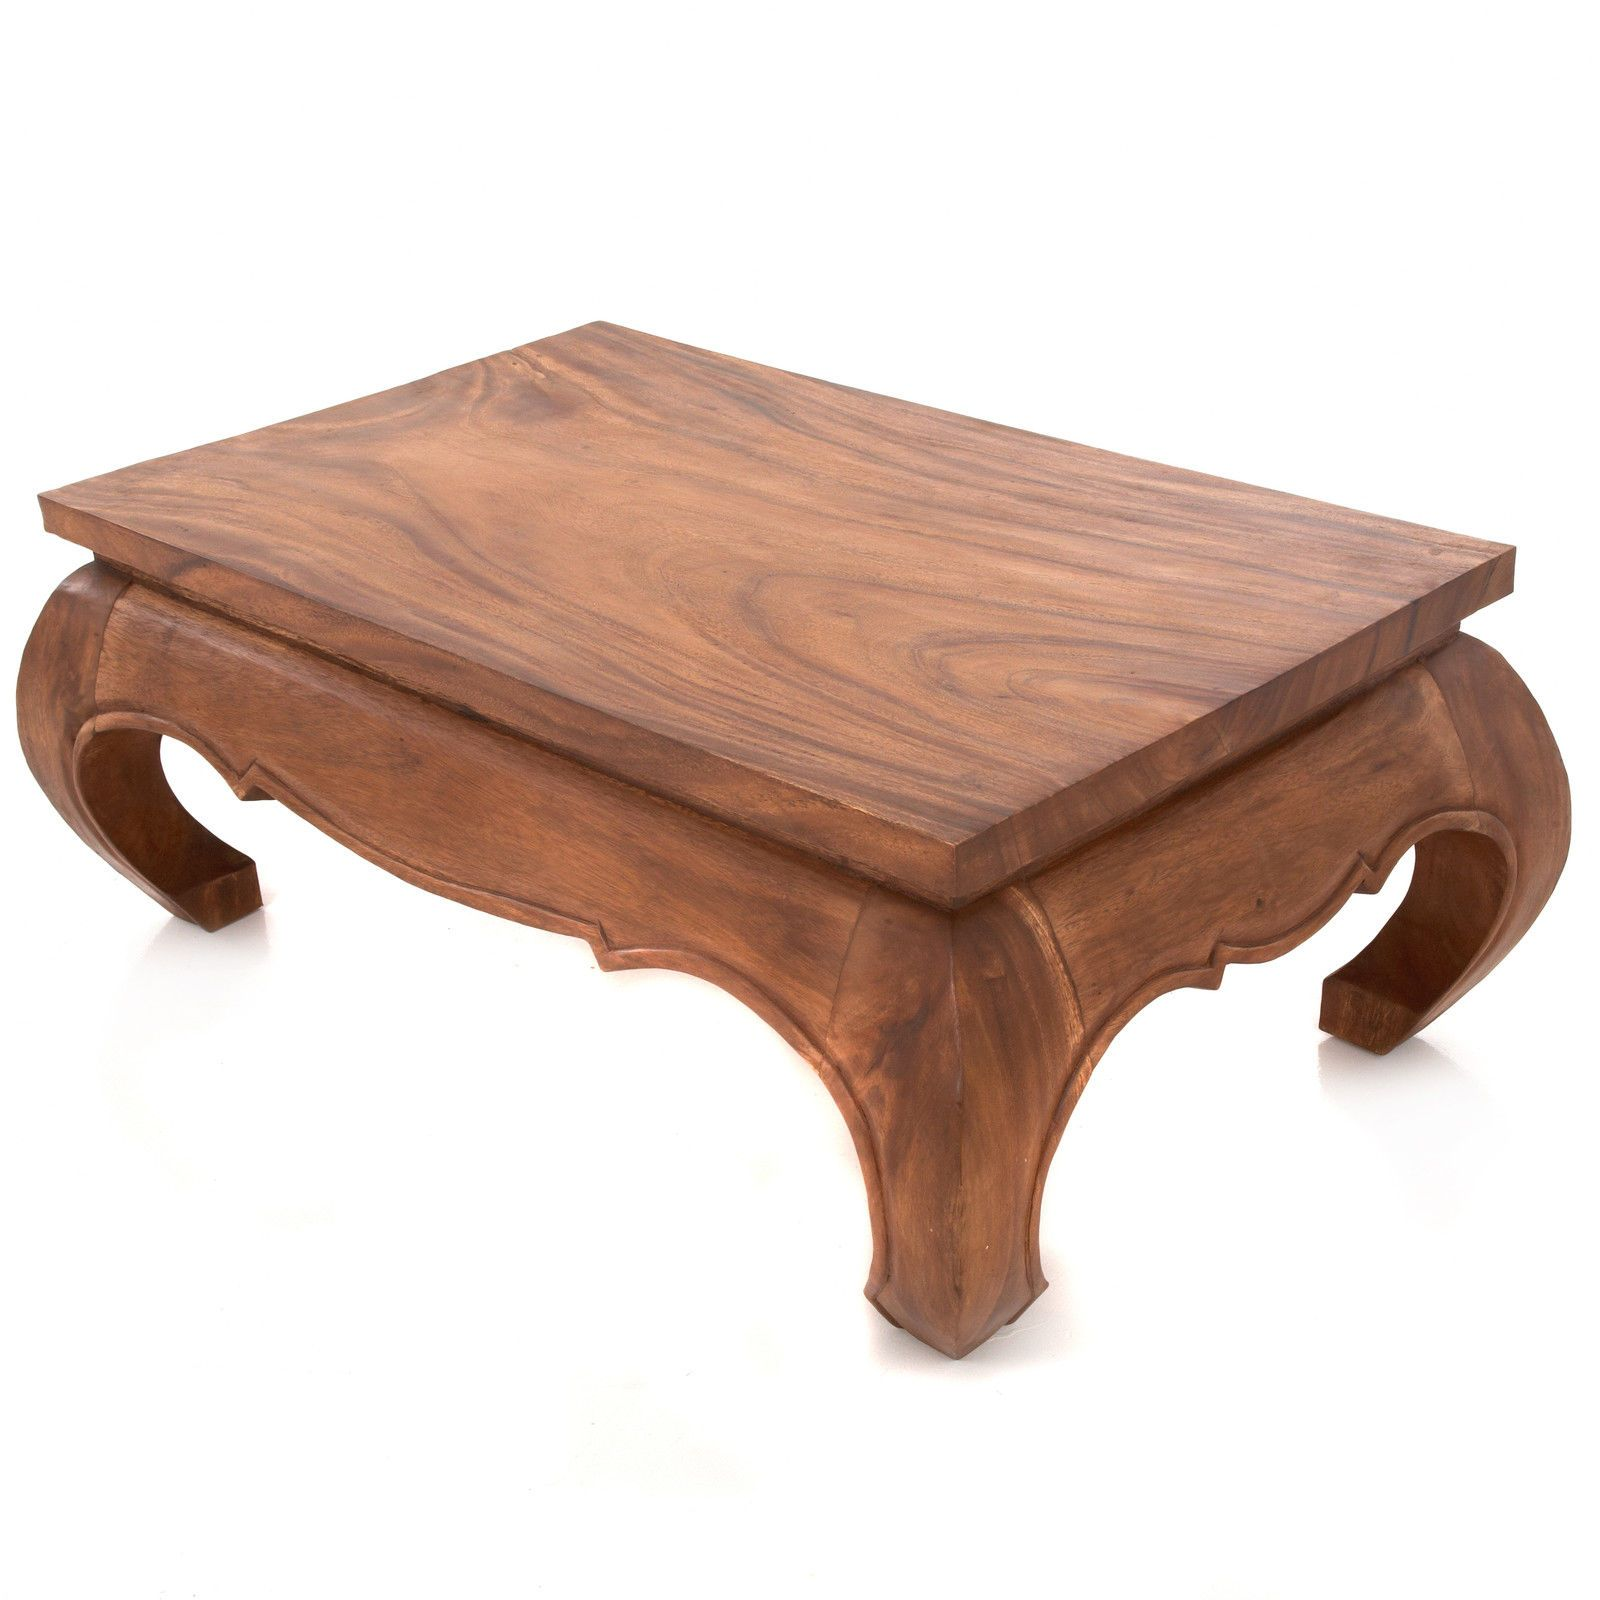 Fair trade wooden opium coffee table fu 620 m ebay coffee fair trade wooden opium coffee table fu 620 m ebay geotapseo Images